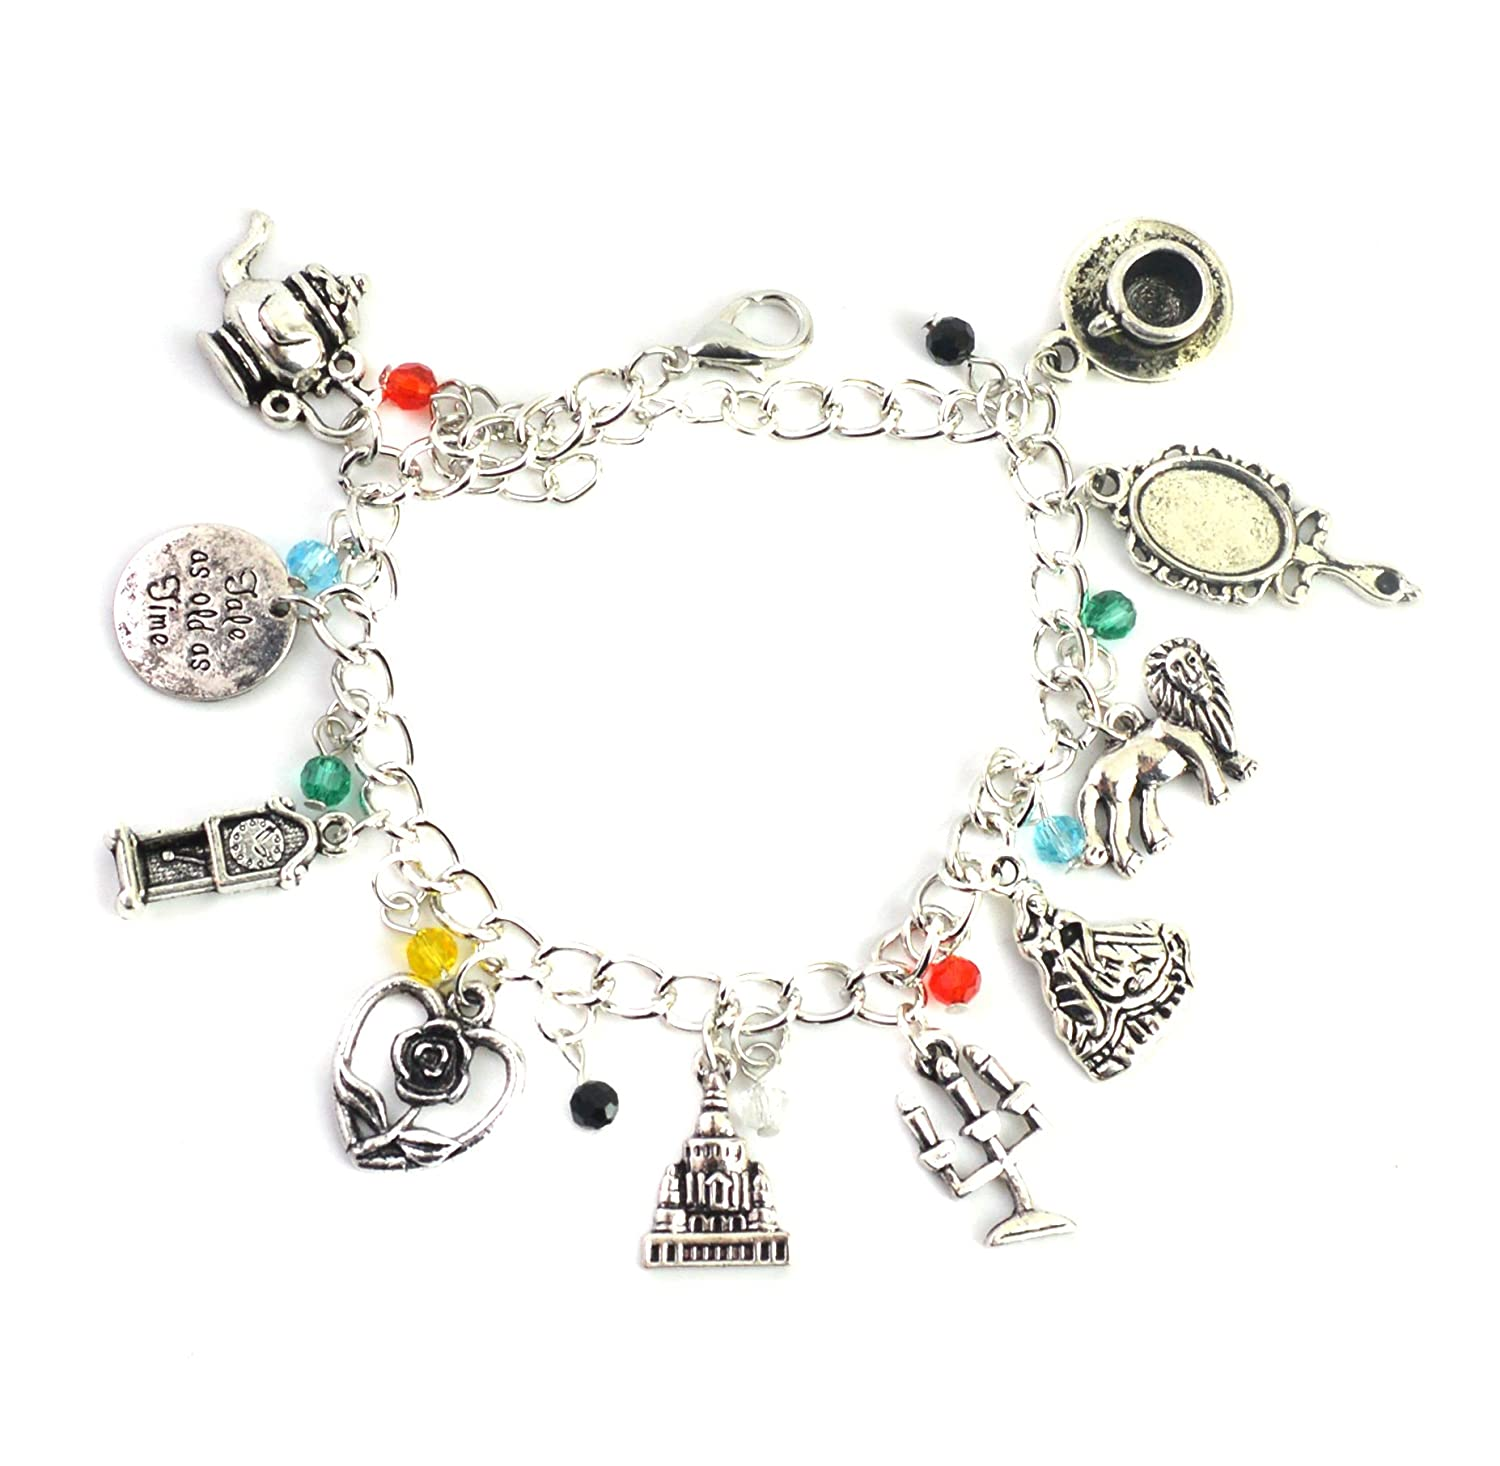 Beauty And The Beast Charm Bracelet - Movie Inspired Silver Bracelet For Girls in Gift Box Beaux Bijoux FG